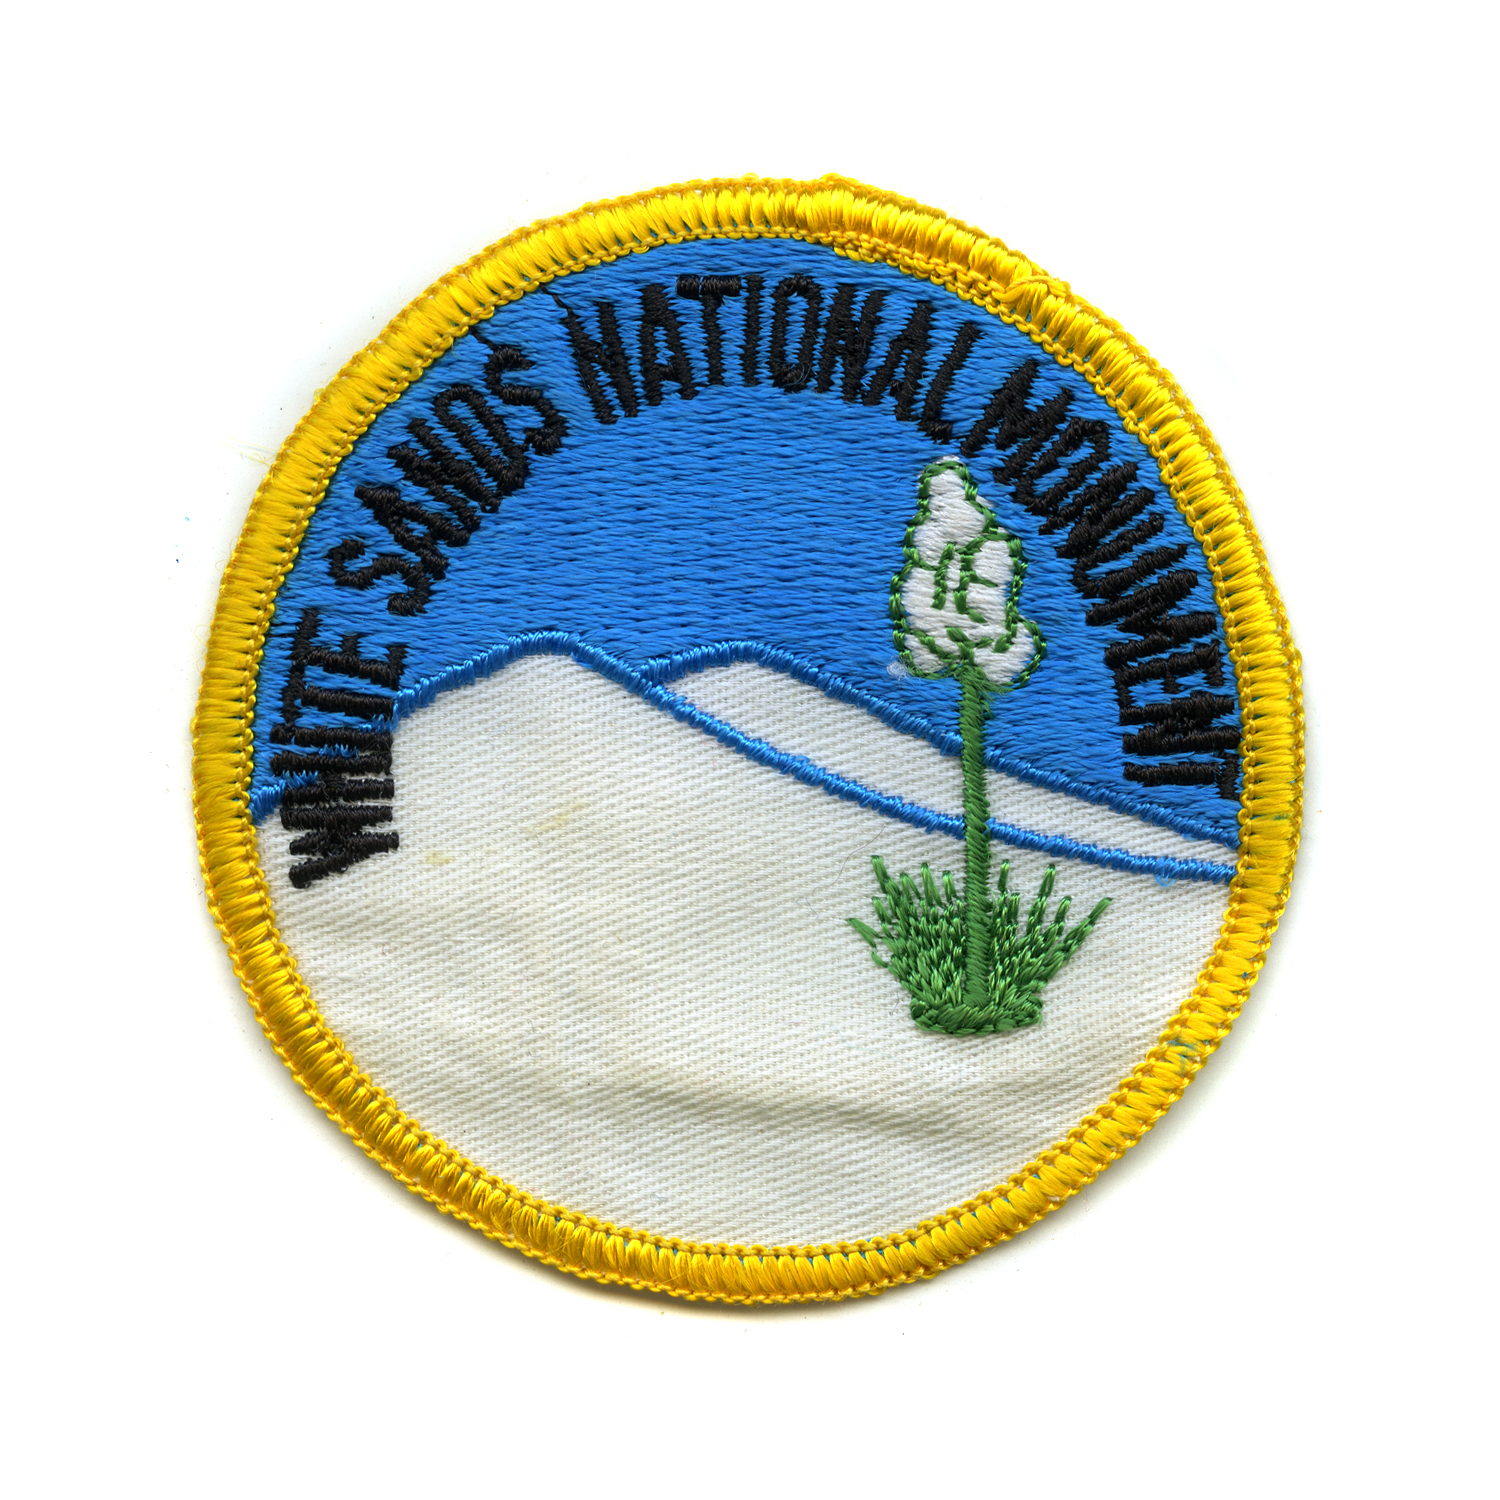 nps_patch_project_white_sands_national_monument_patch_2.jpg